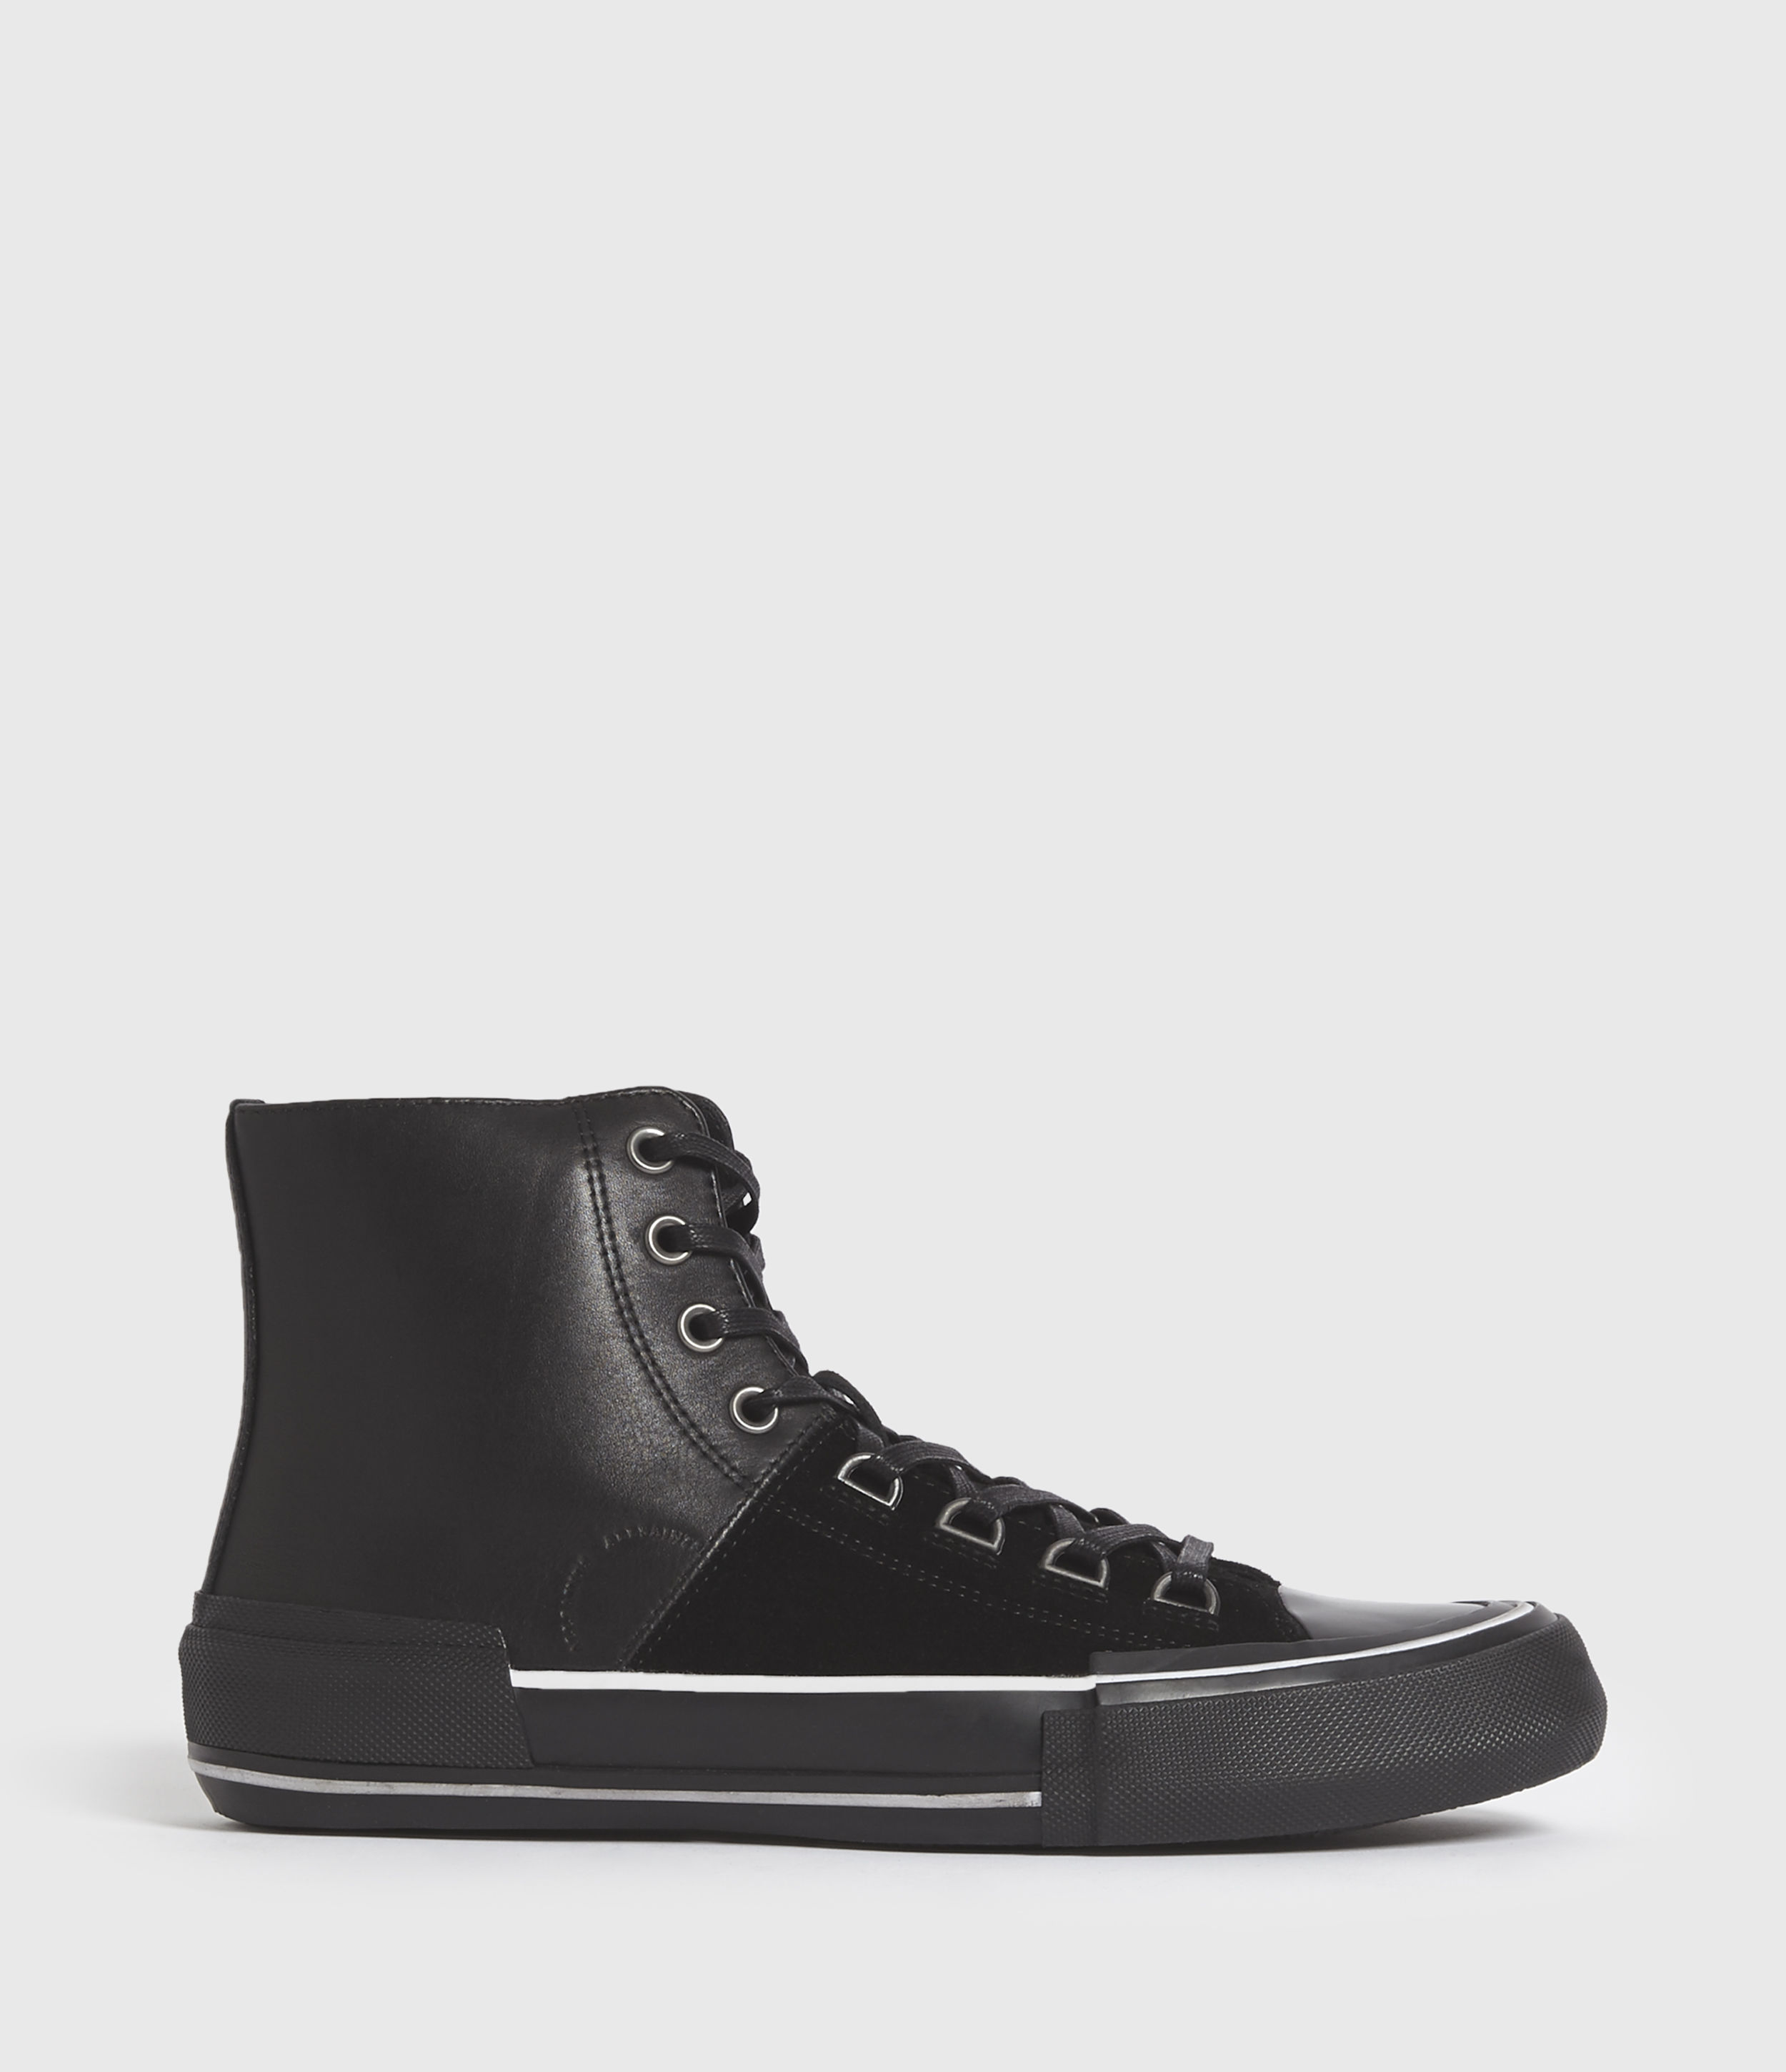 AllSaints Mens Waylon High Top Leather Trainers, Black, Size: UK 11/US 12/EU 45